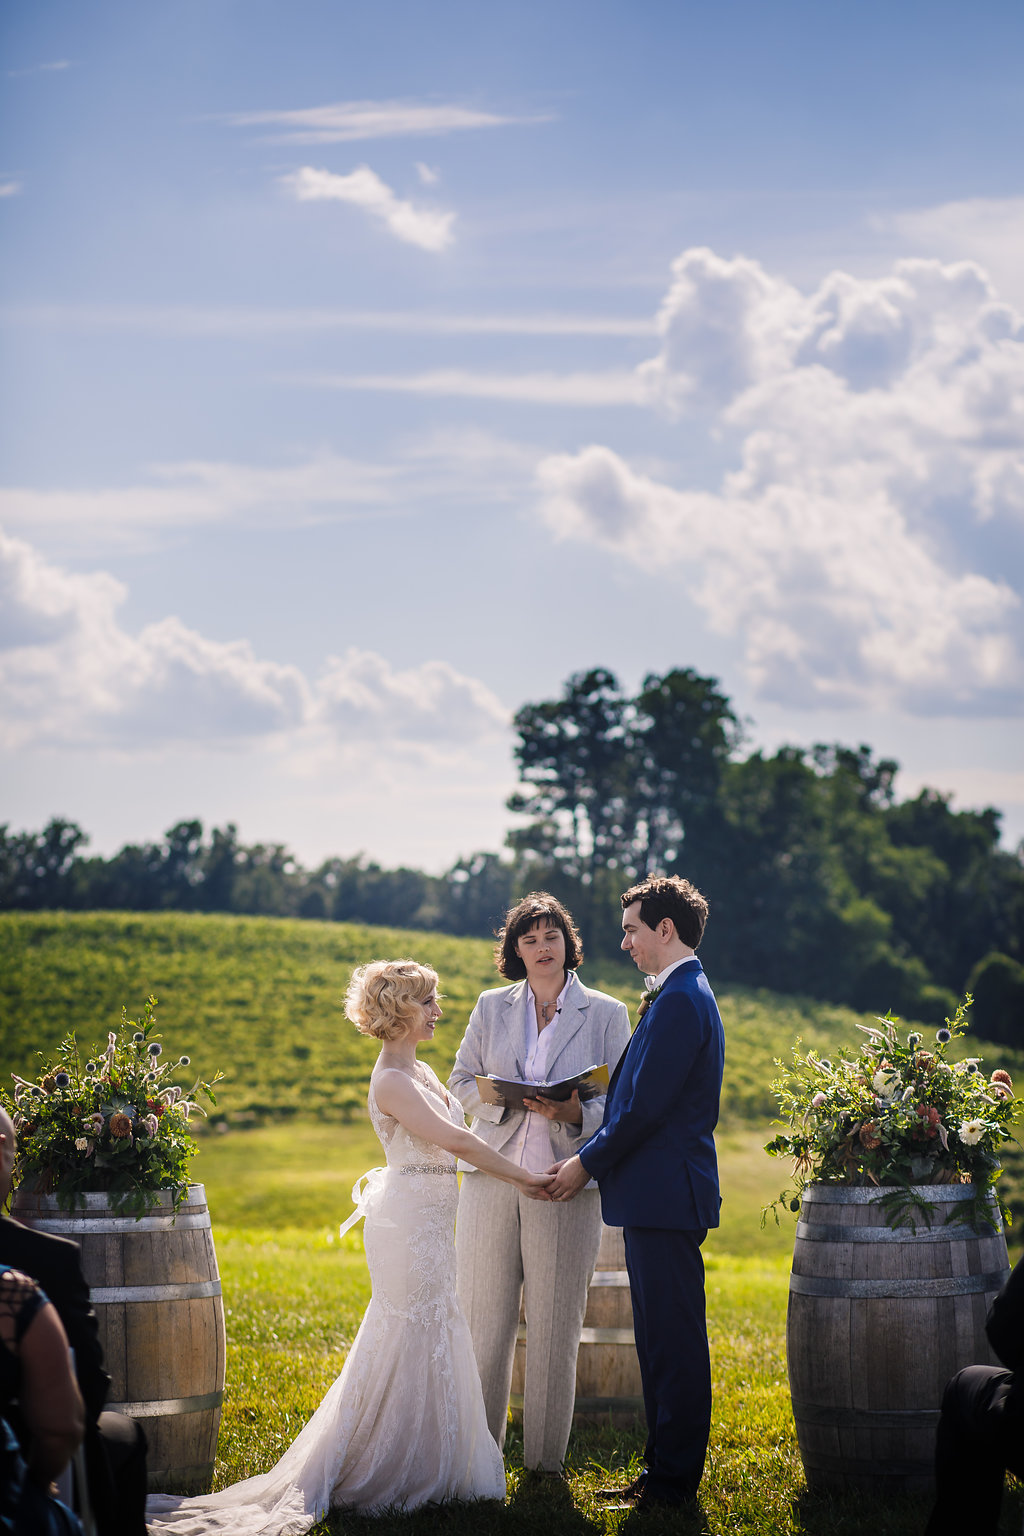 brielle-davis-events-photography-by-brea-linganore-winery-james-sarah-wedding-ceremony-bride-and-groom-at-alter.jpg